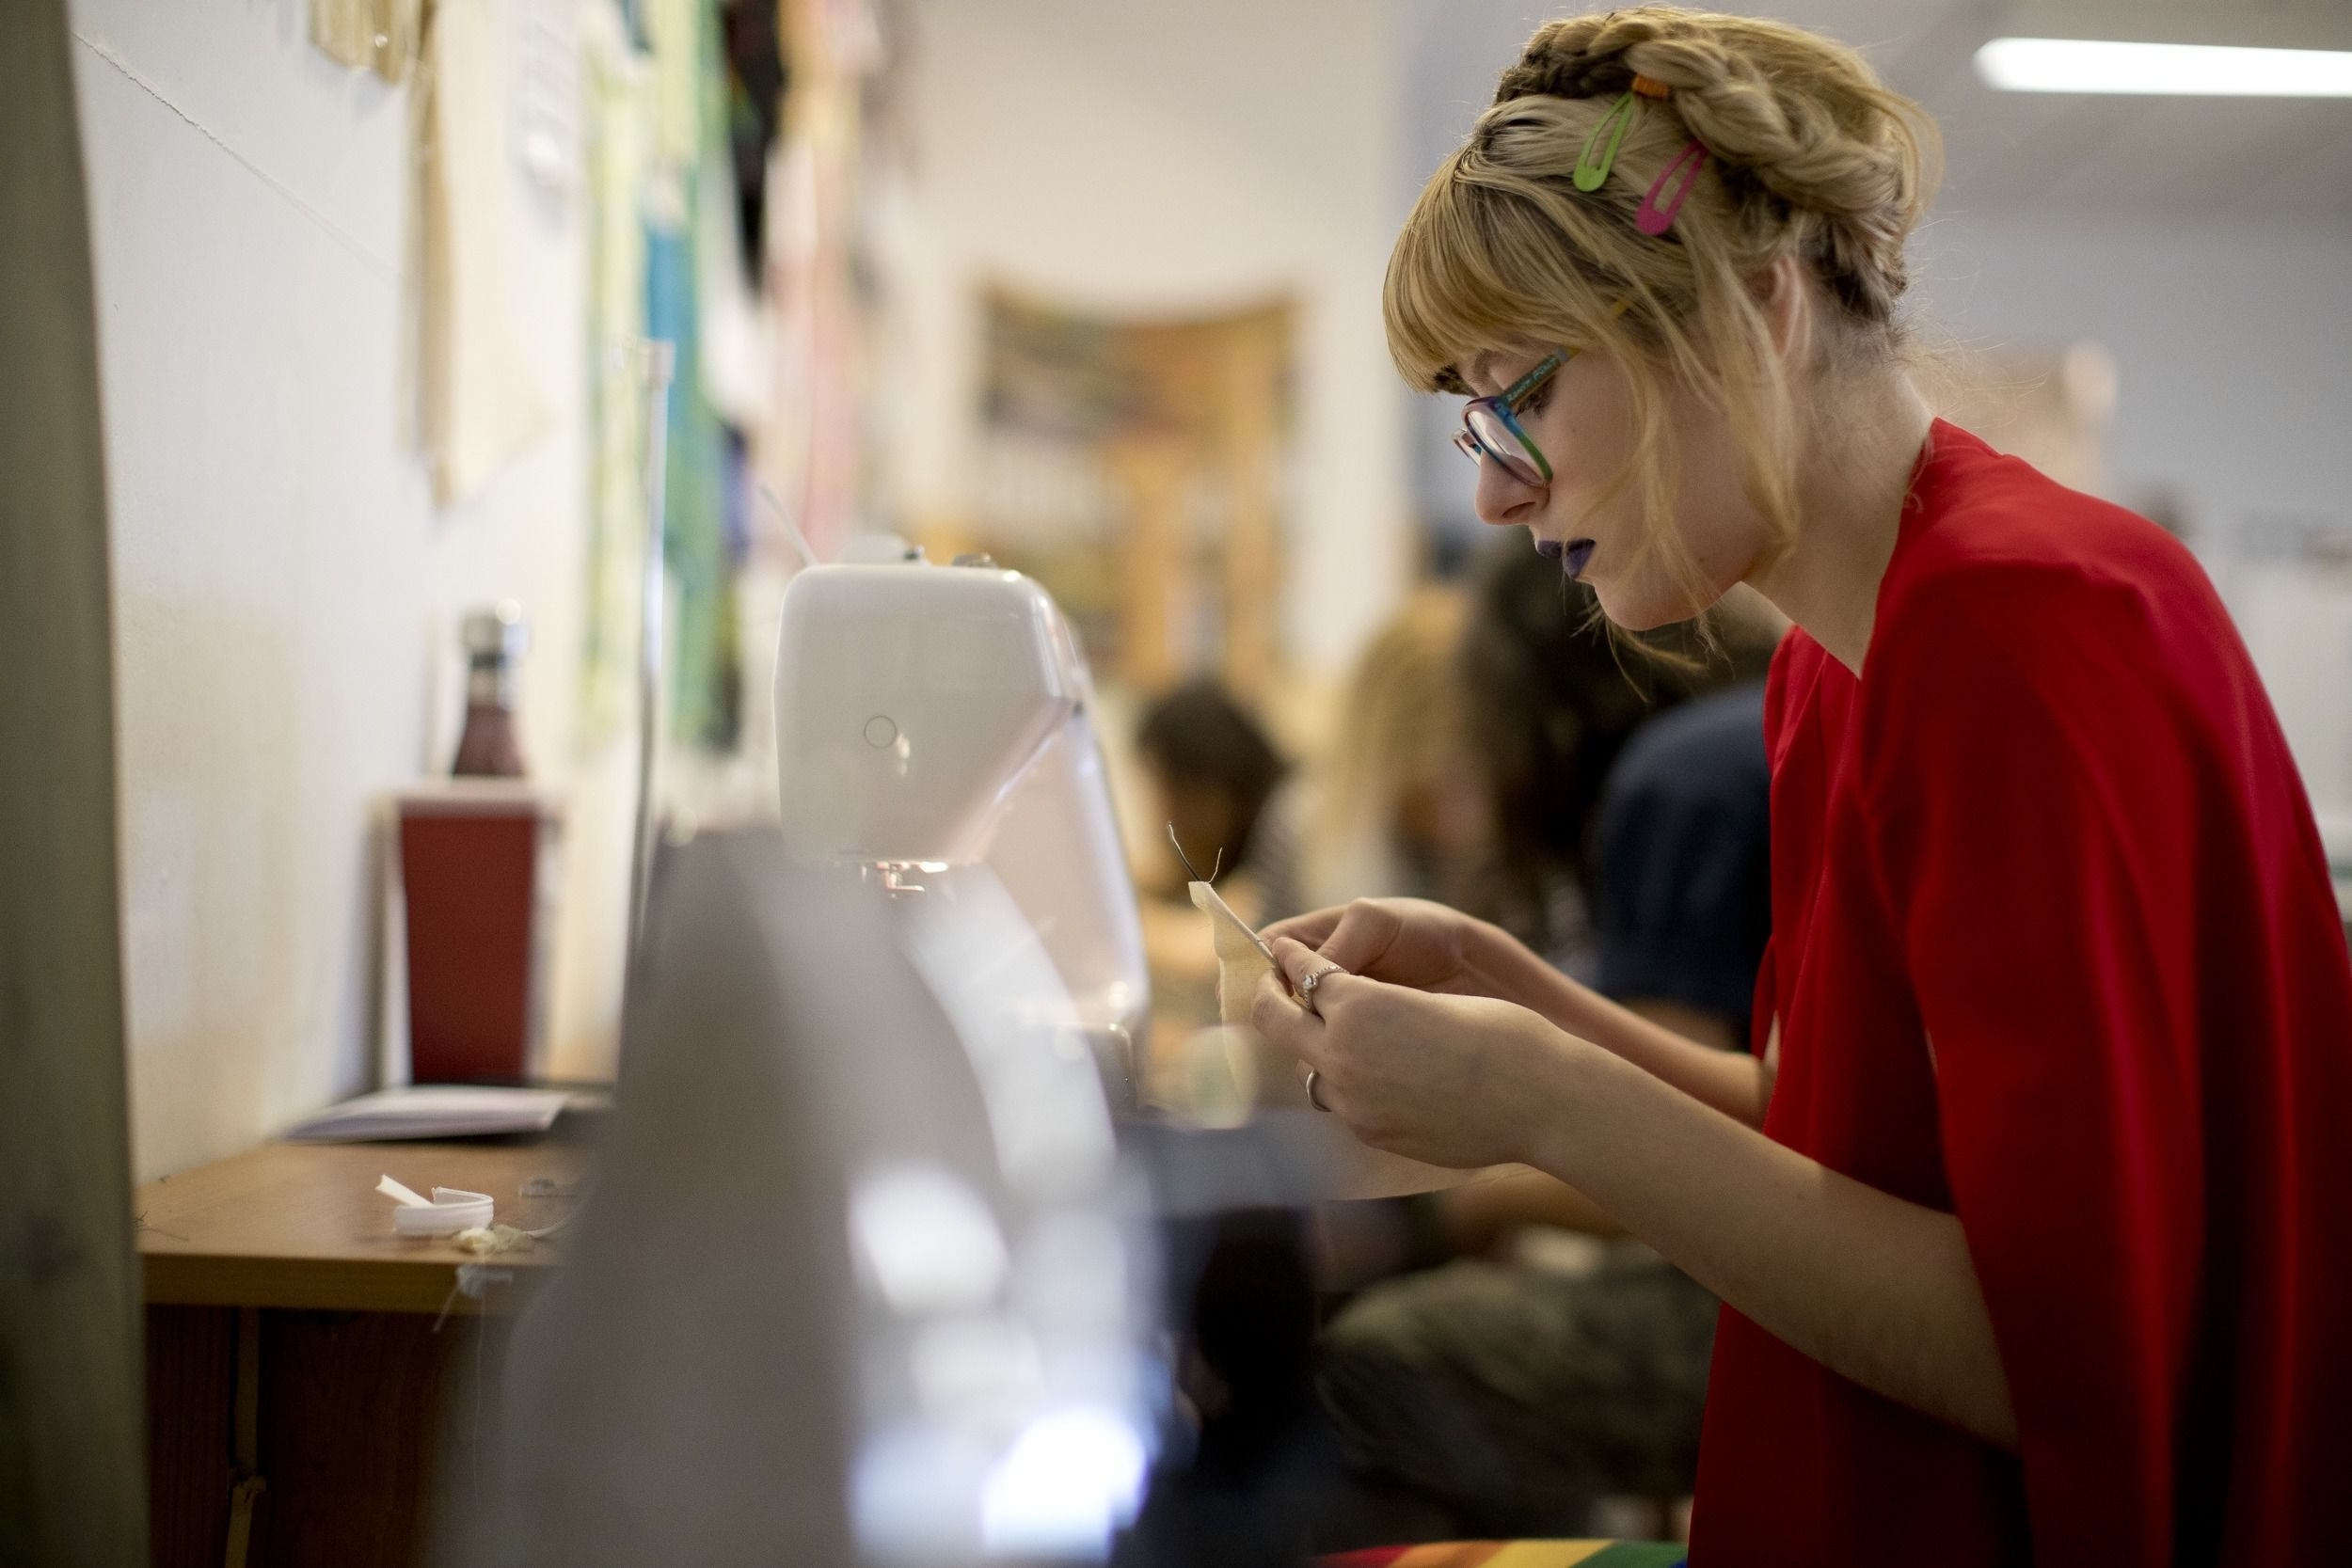 A student works at a sewing machine during class.